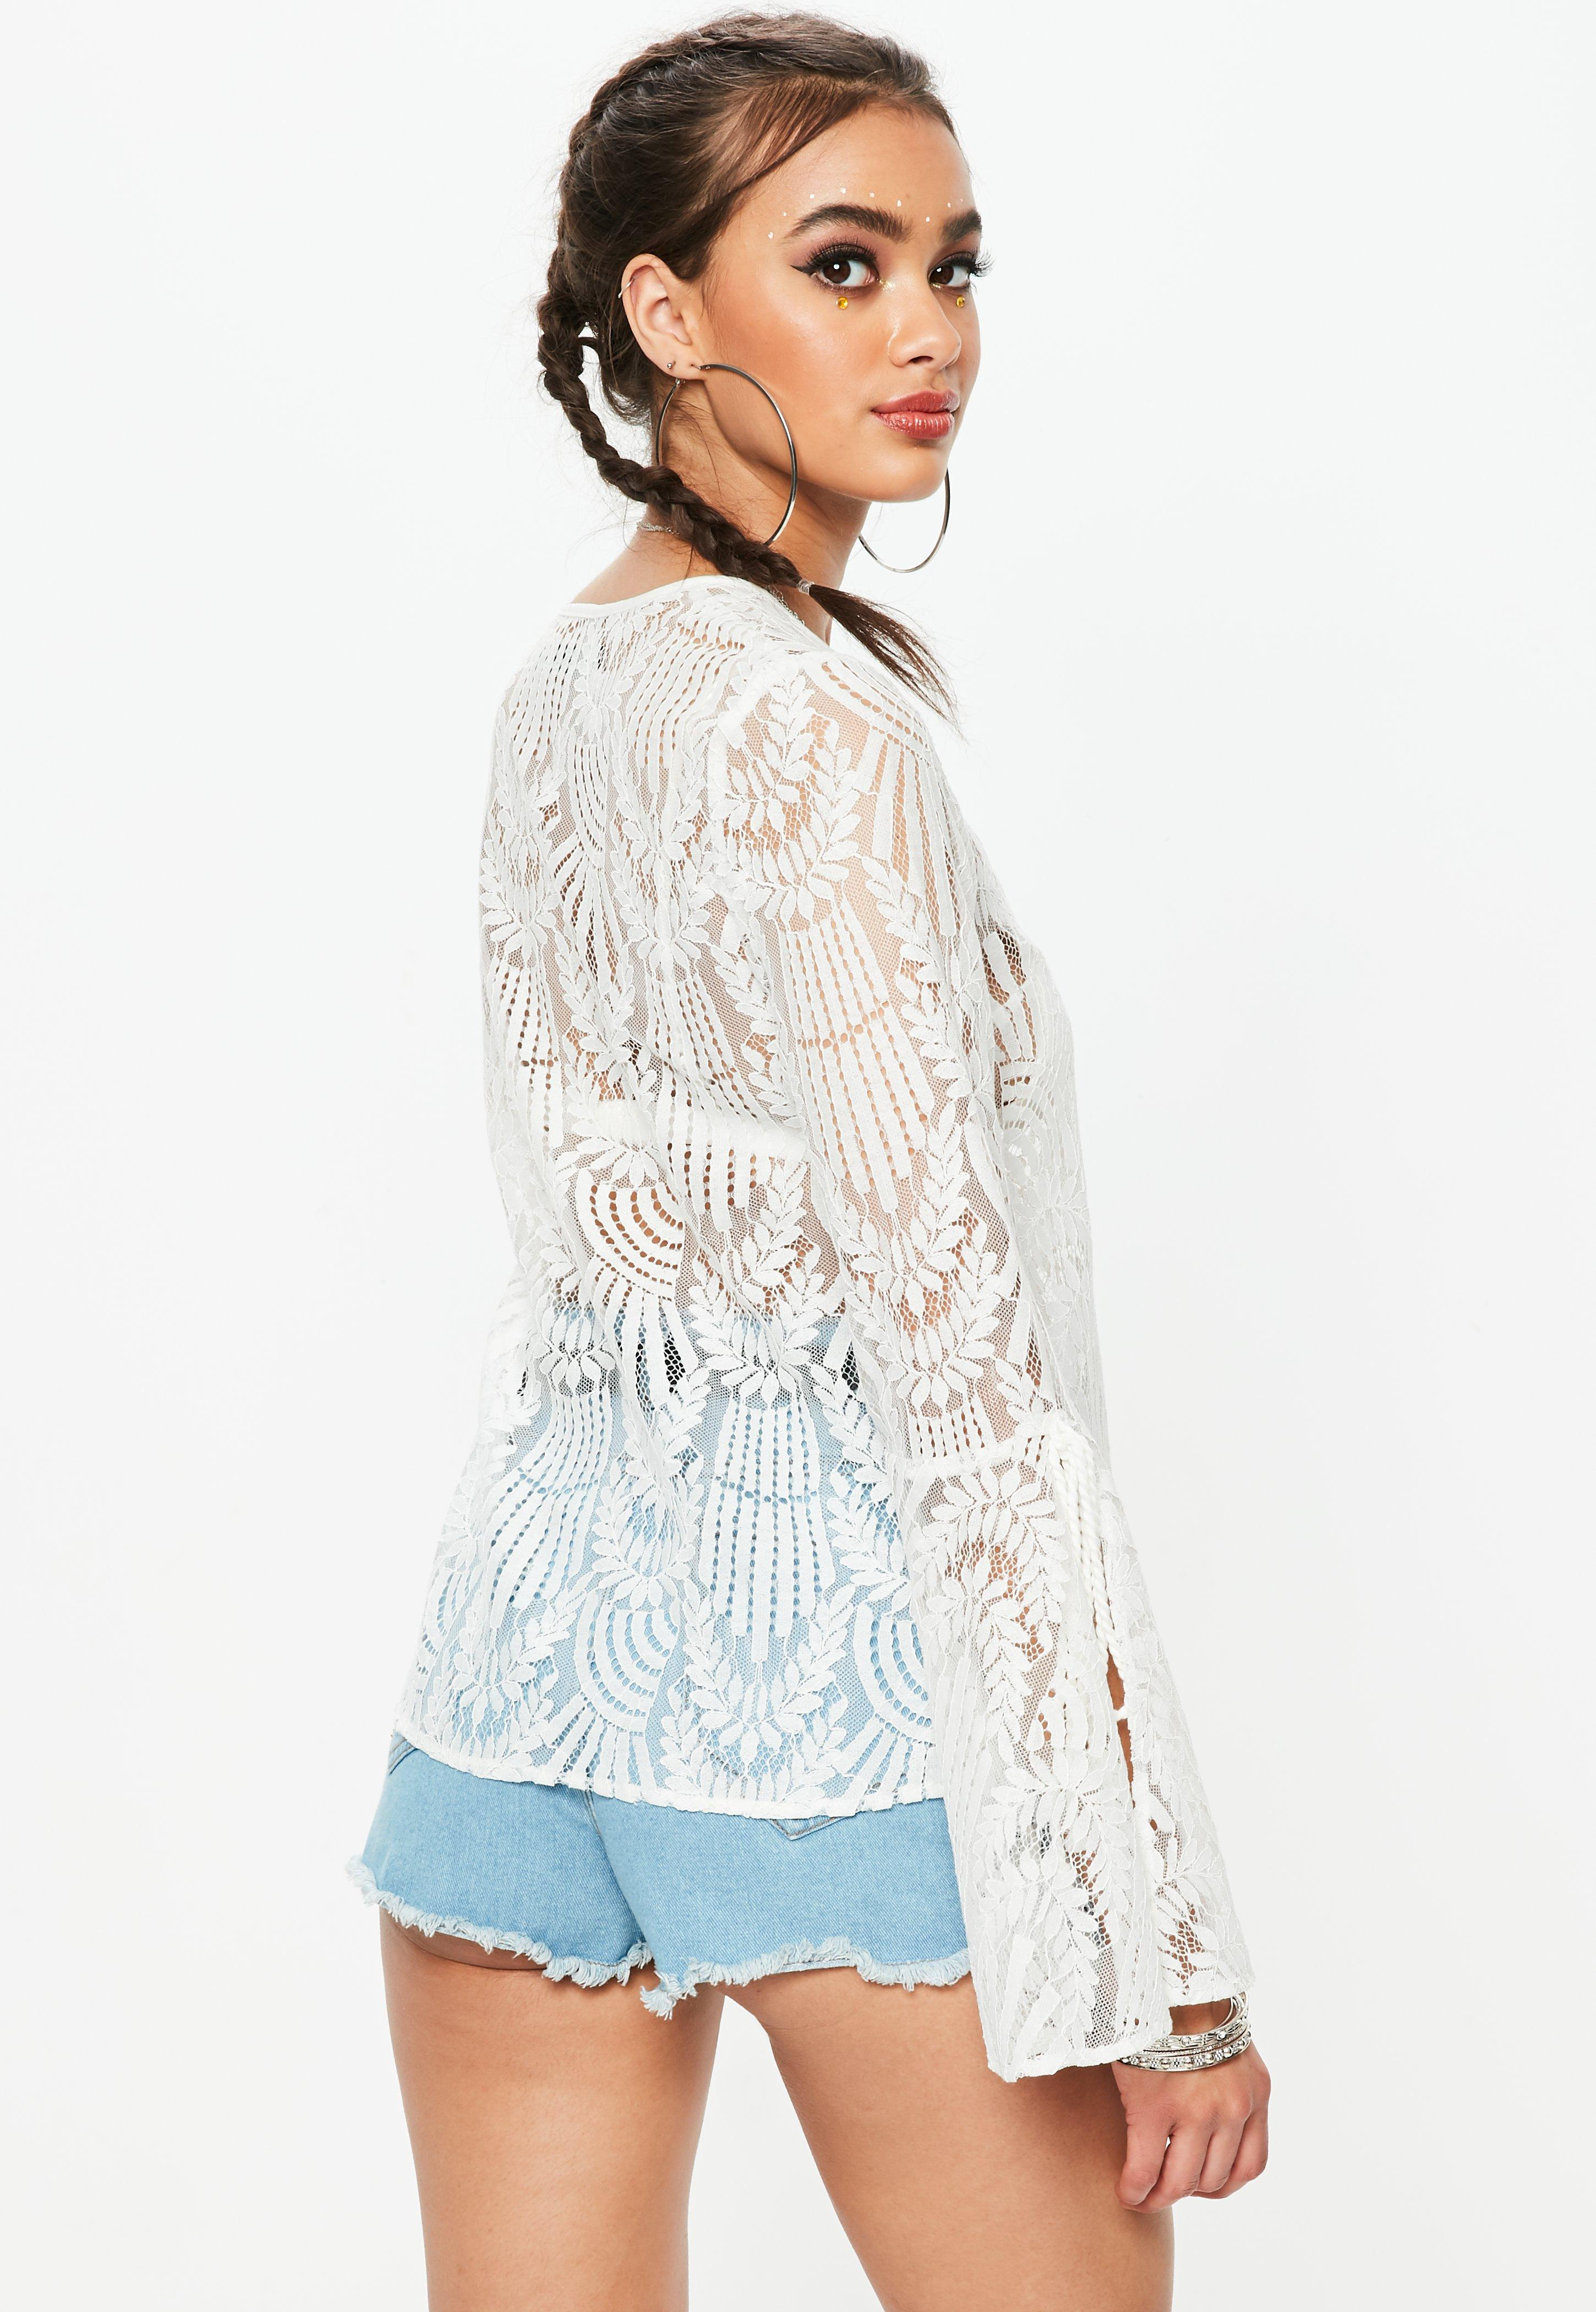 Missguided Ivory Boho Lace Blouse Clearance Official Find Great Free Shipping Footlocker Pictures AUMqC